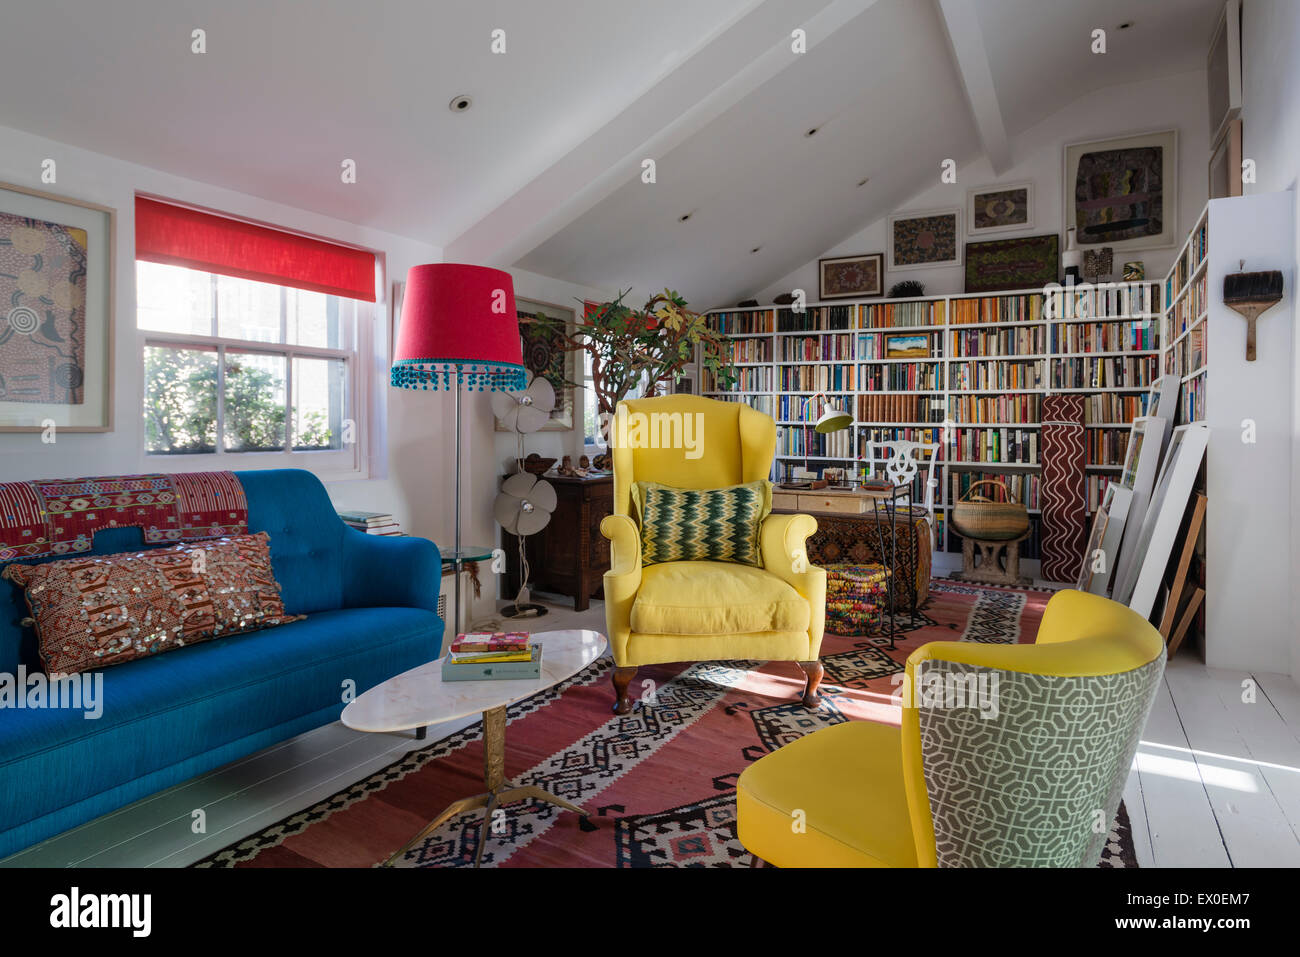 Yellow Winged Back Armchair, Julep Chair And Bold Blue Sofa In Living Room  With Uzbek Kilim, Aboriginal Art And Inbuilt Book She